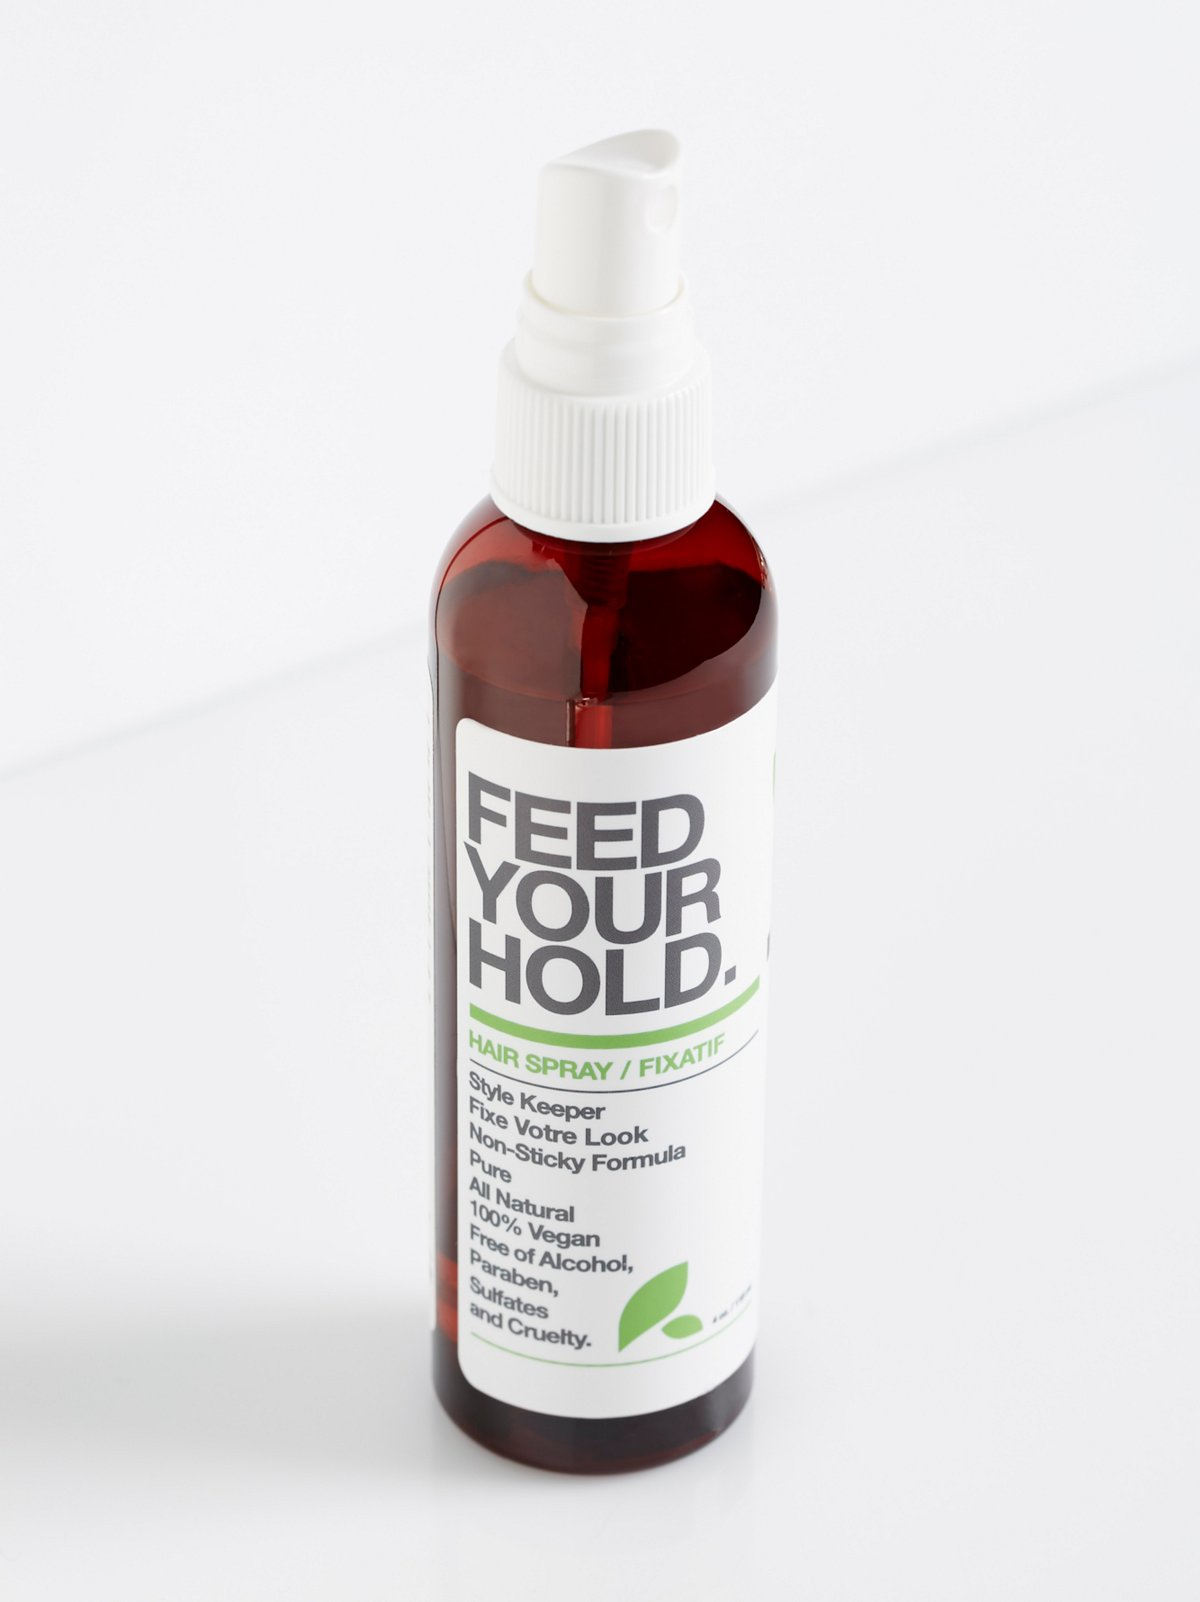 Feed Your Hold喷发剂